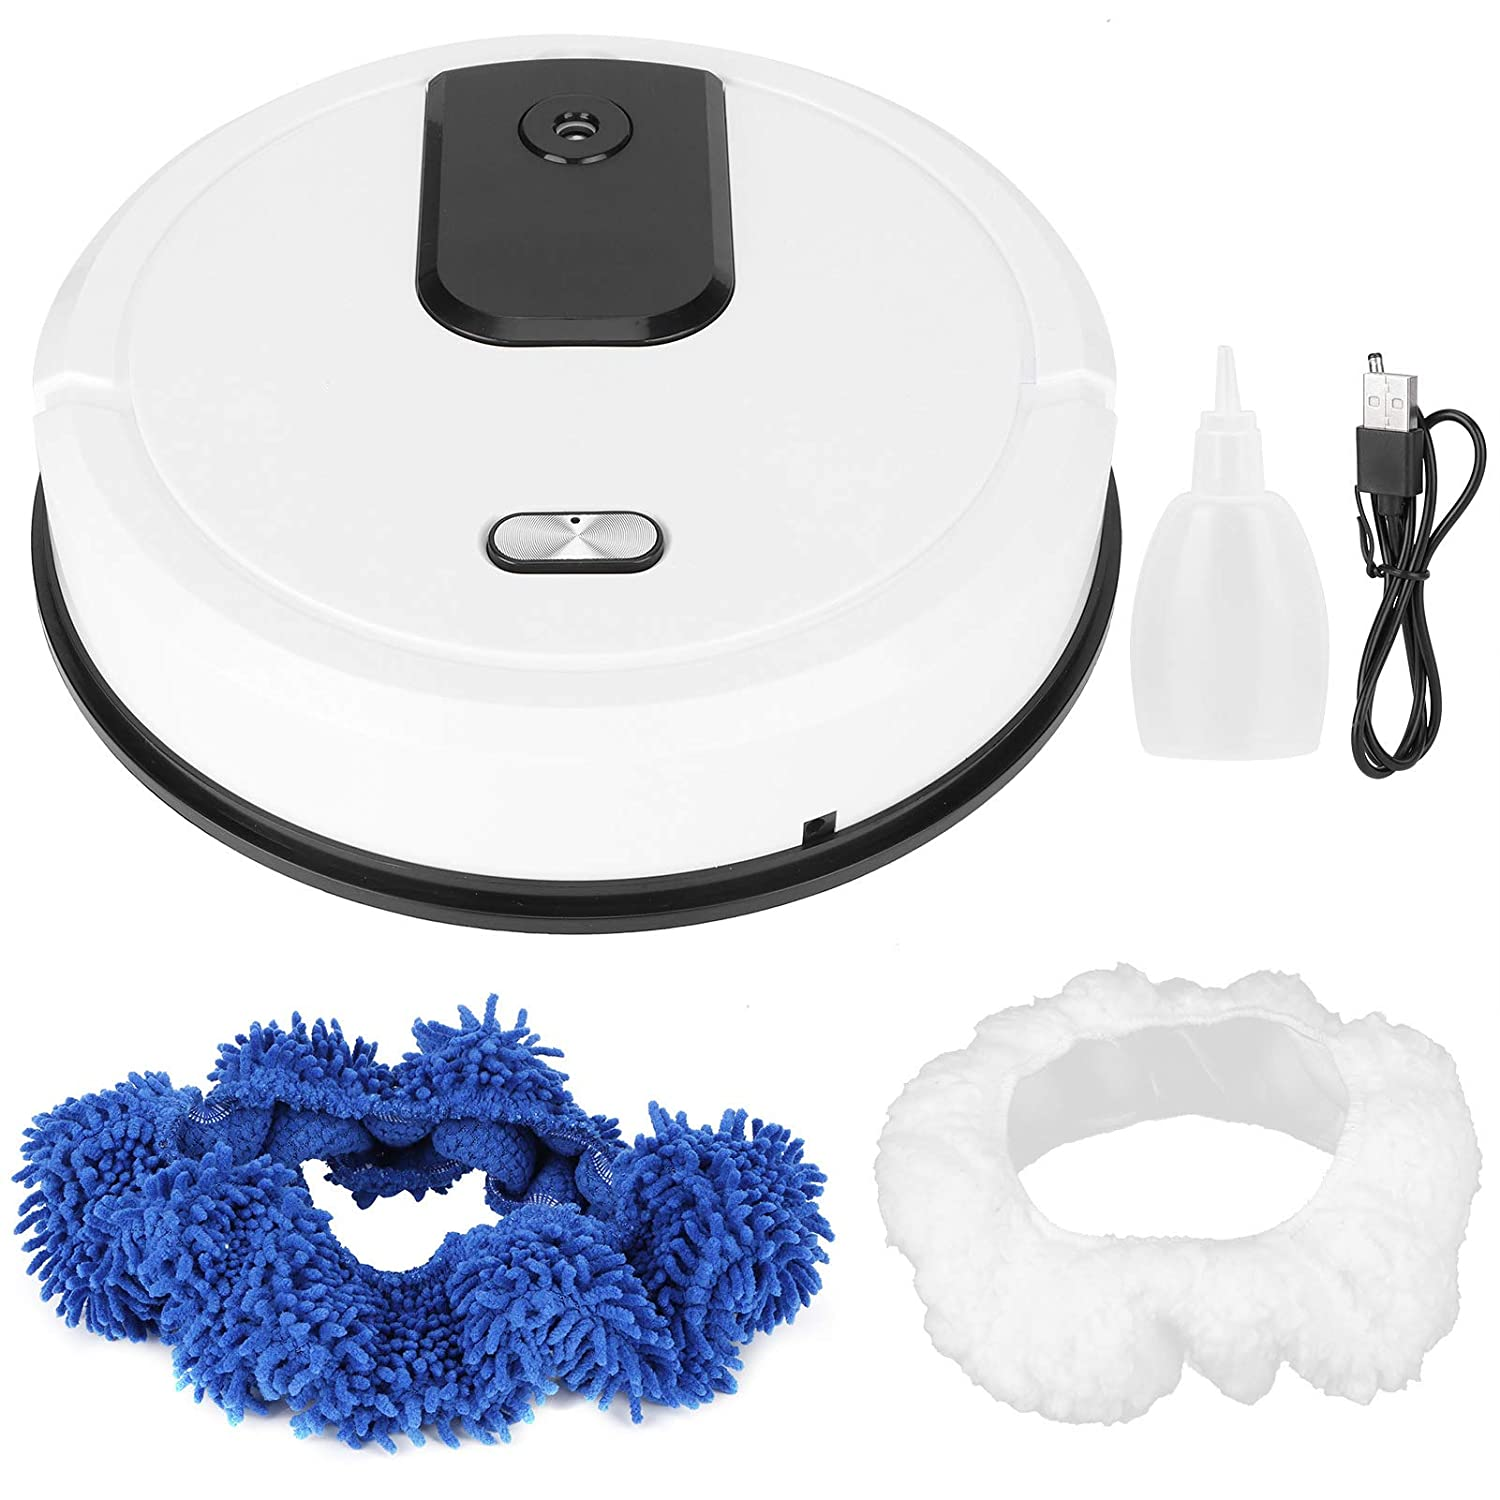 qing niao Sweeping Robot 2021 spring and summer new Clea Inventory cleanup selling sale Mini Vacuum